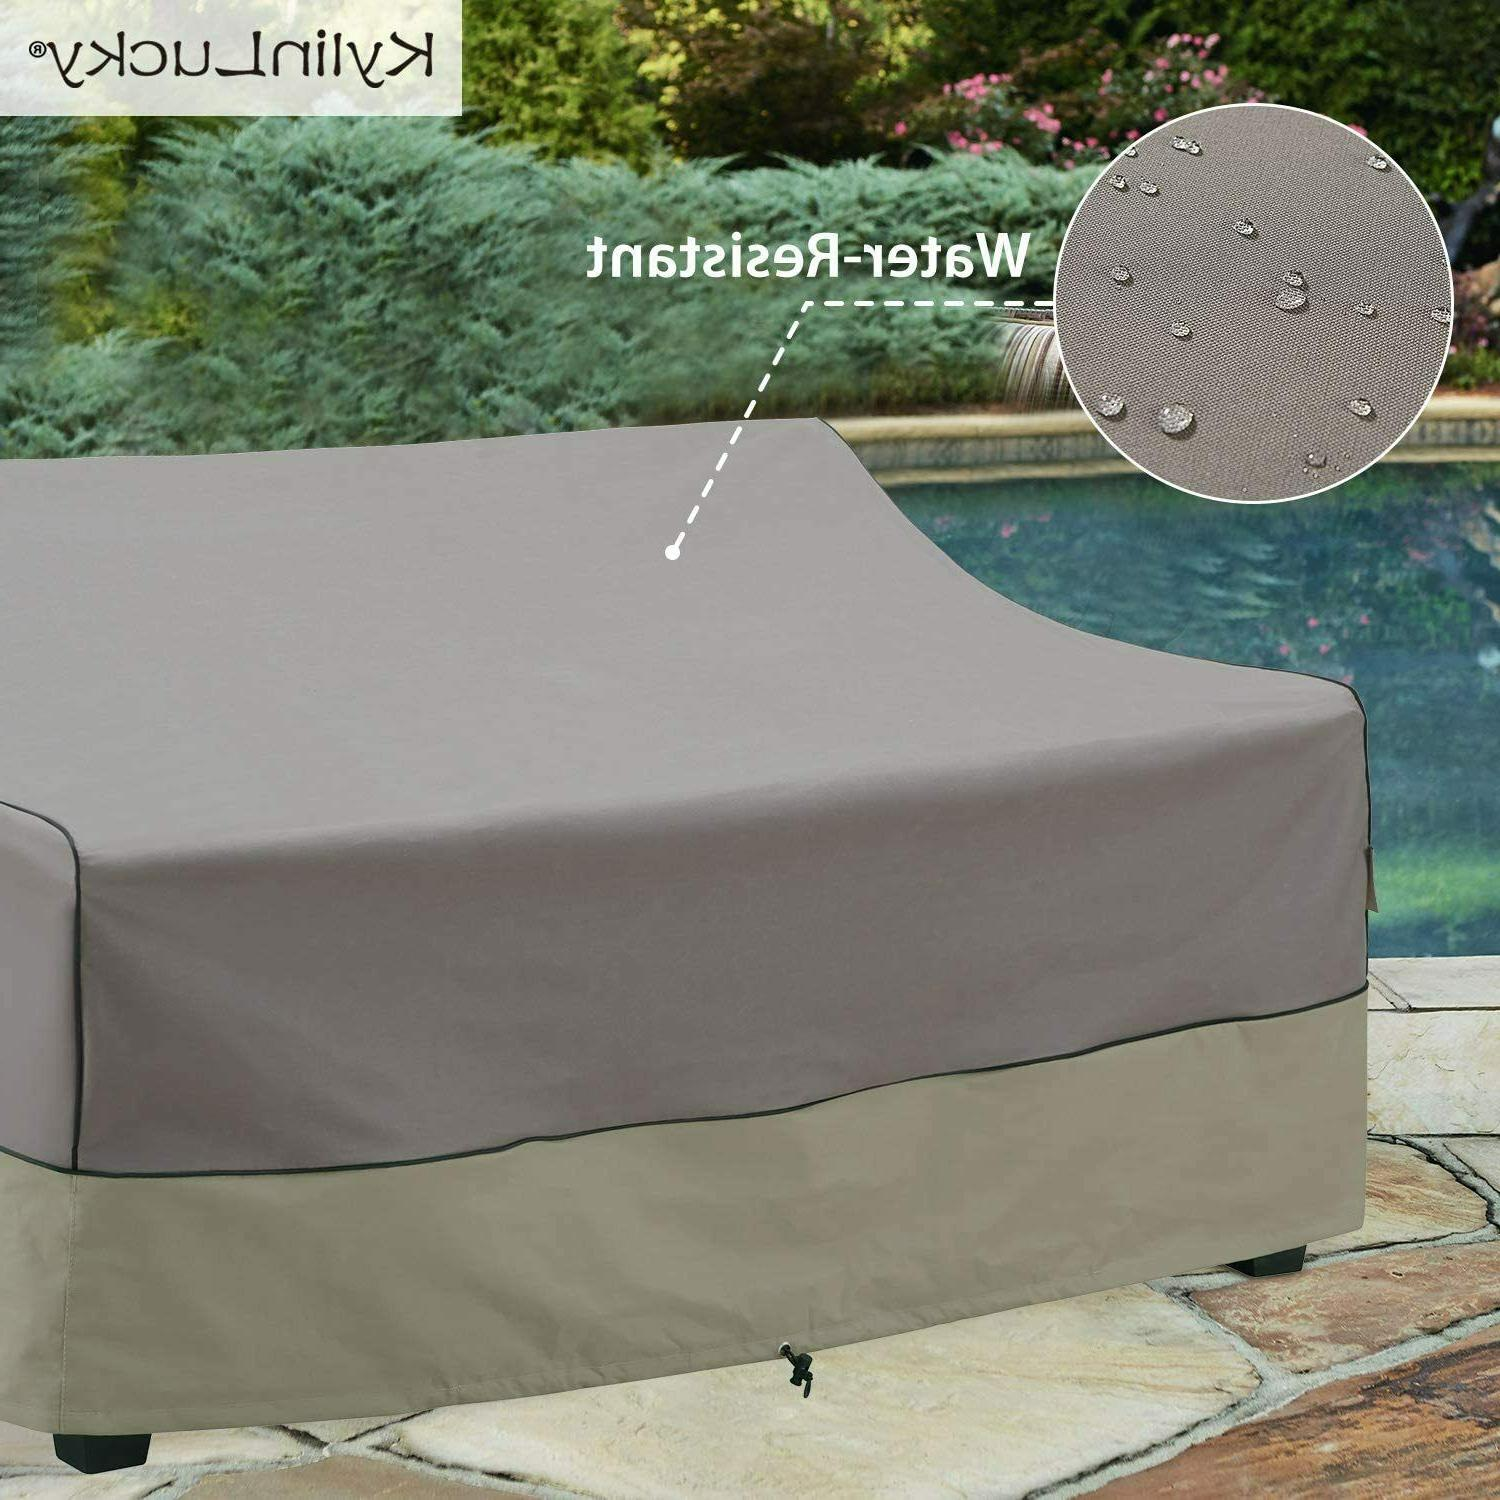 Kylinlucky Outdoor Furniture Waterproof, Patio Cover Fits